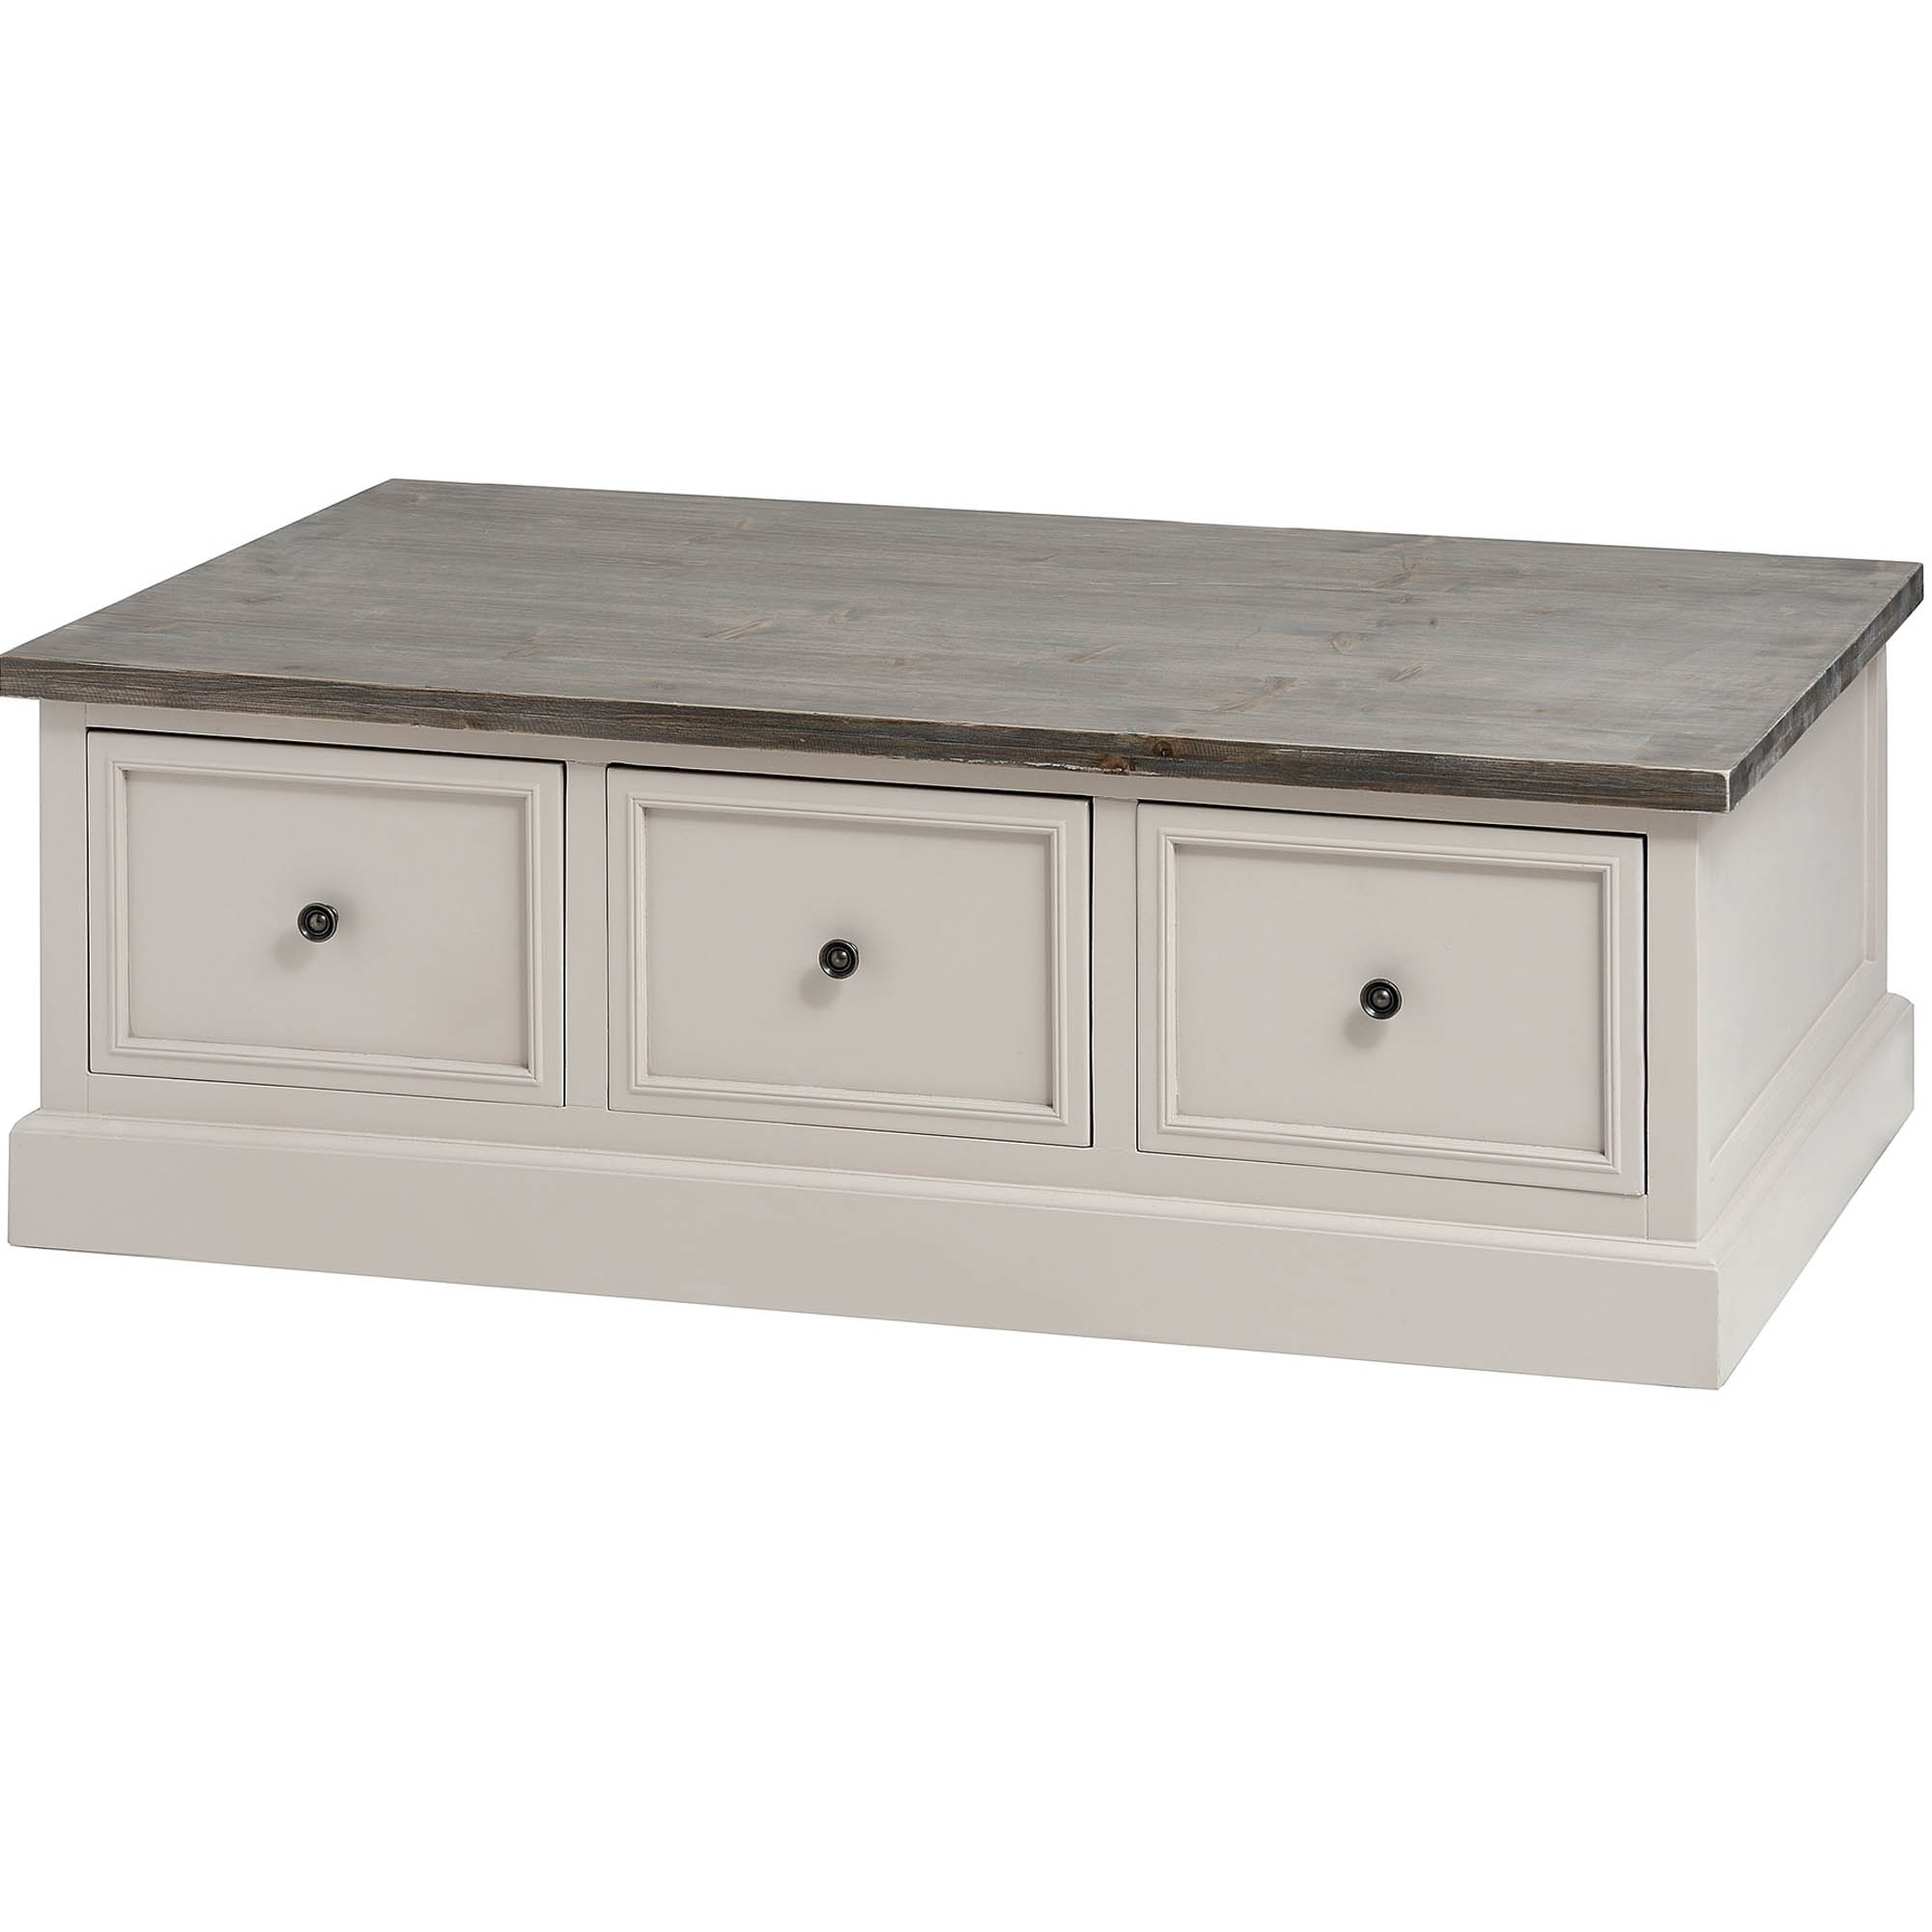 Studley Shabby Chic 6 Drawer Coffee Table Table Homesdirect365